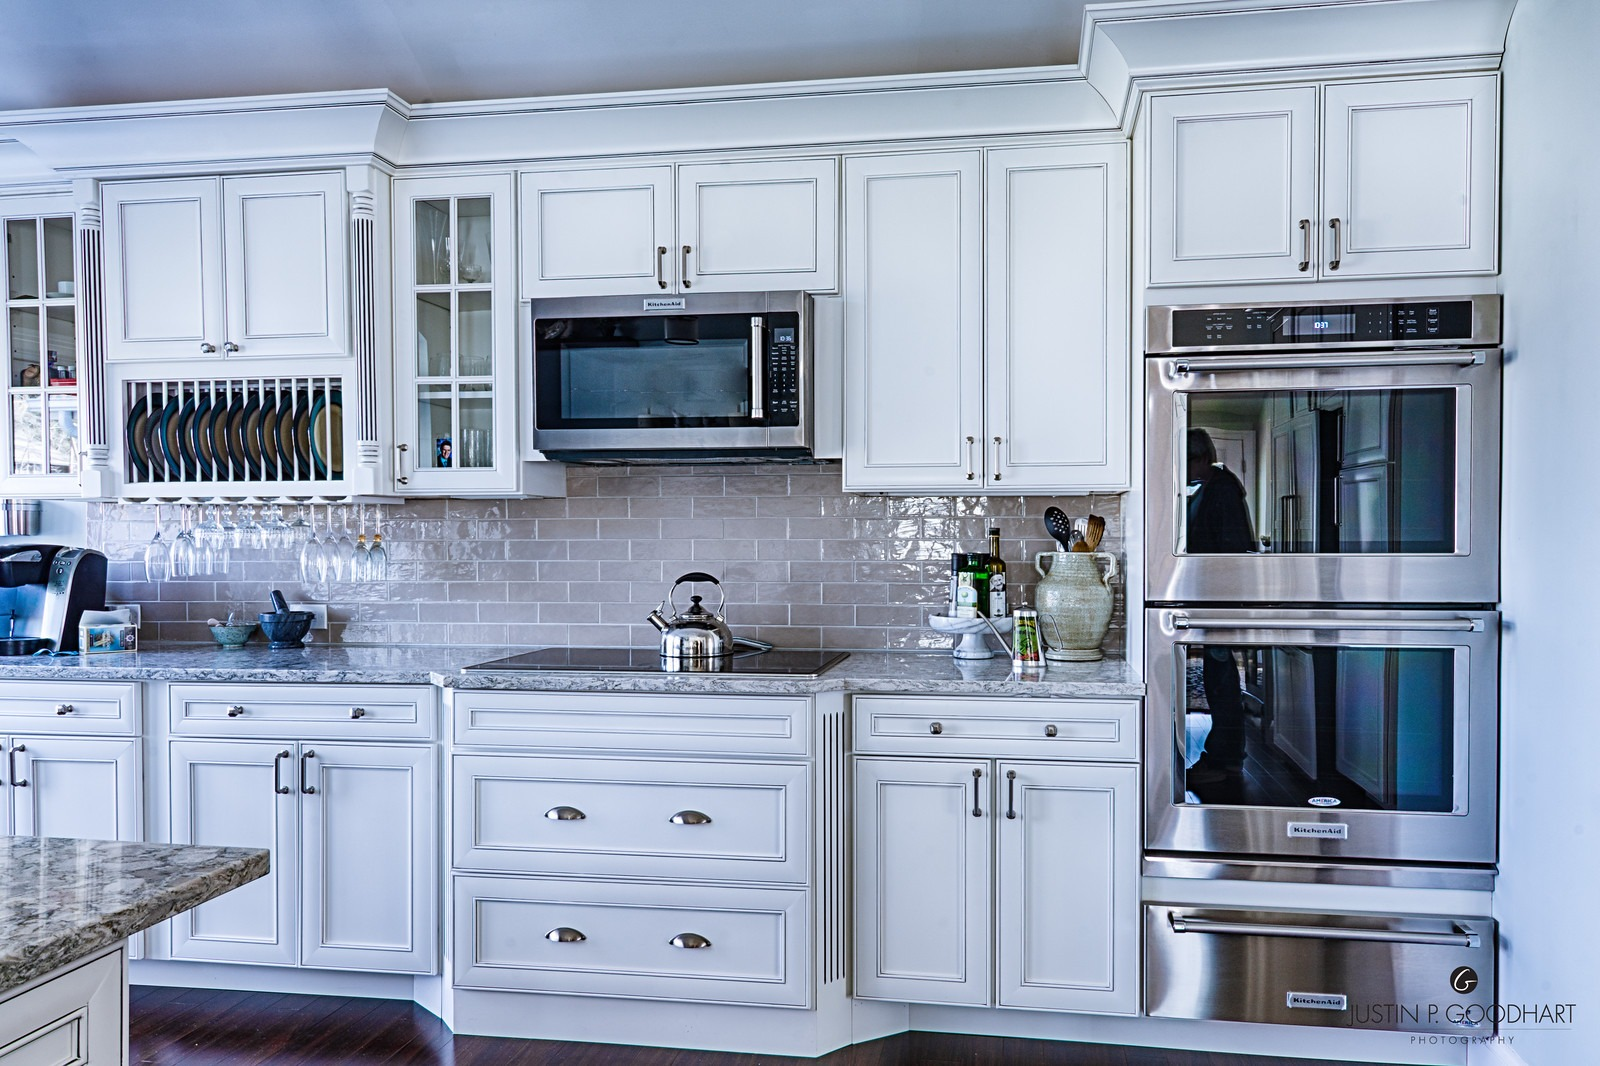 Kitchen Cabinets: Reface or Replace? - Custom Closets and ...